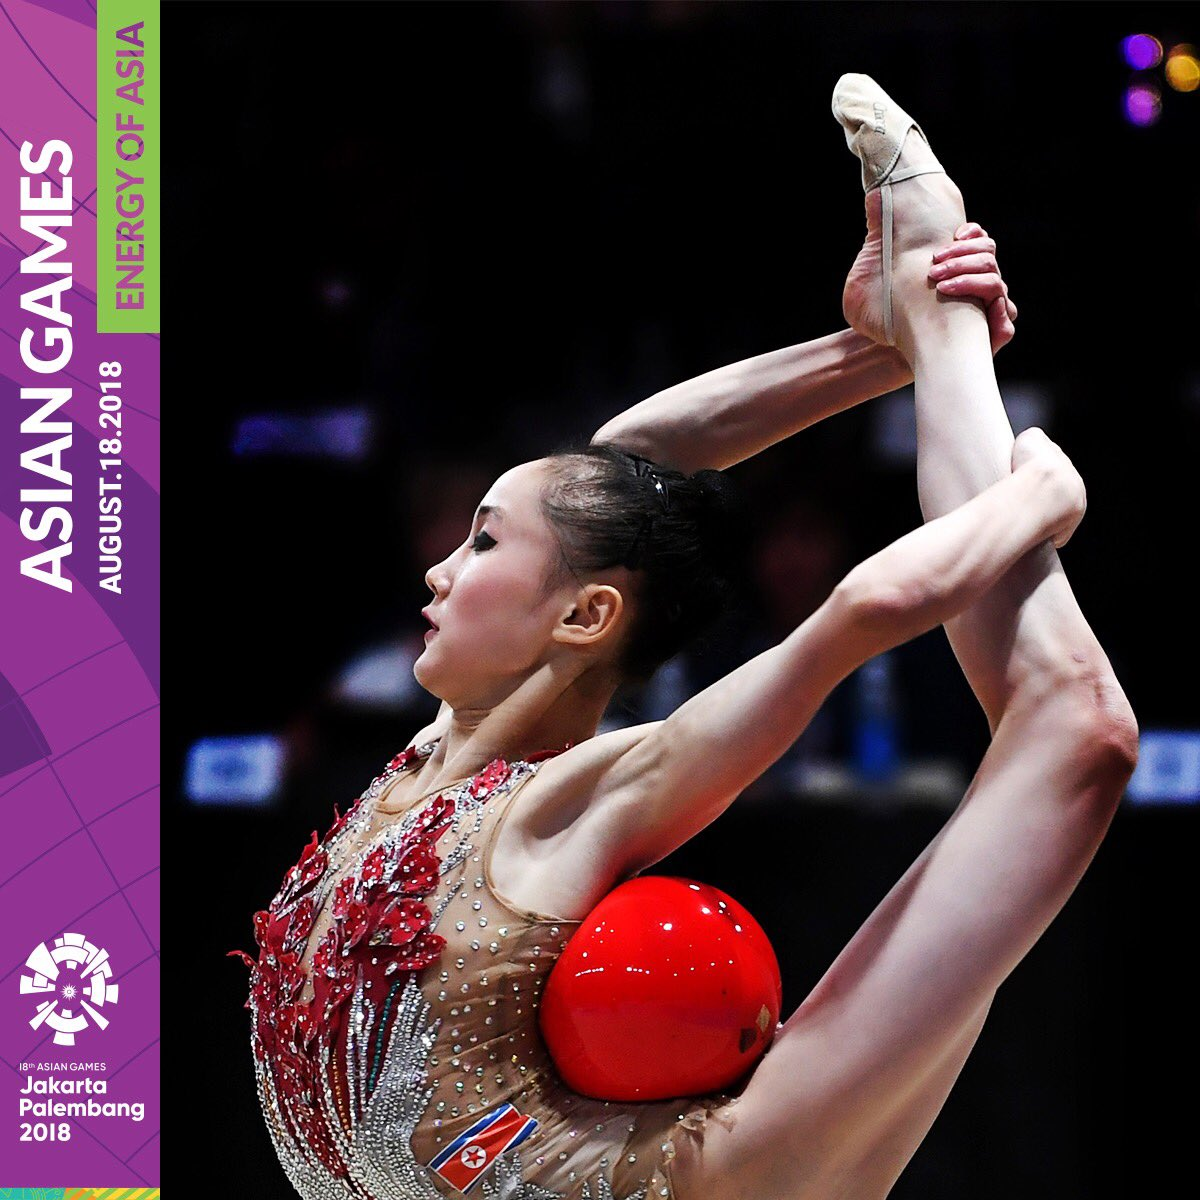 DlmixcEVsAAJ1F5 - Asian Games Gymnastics 2018